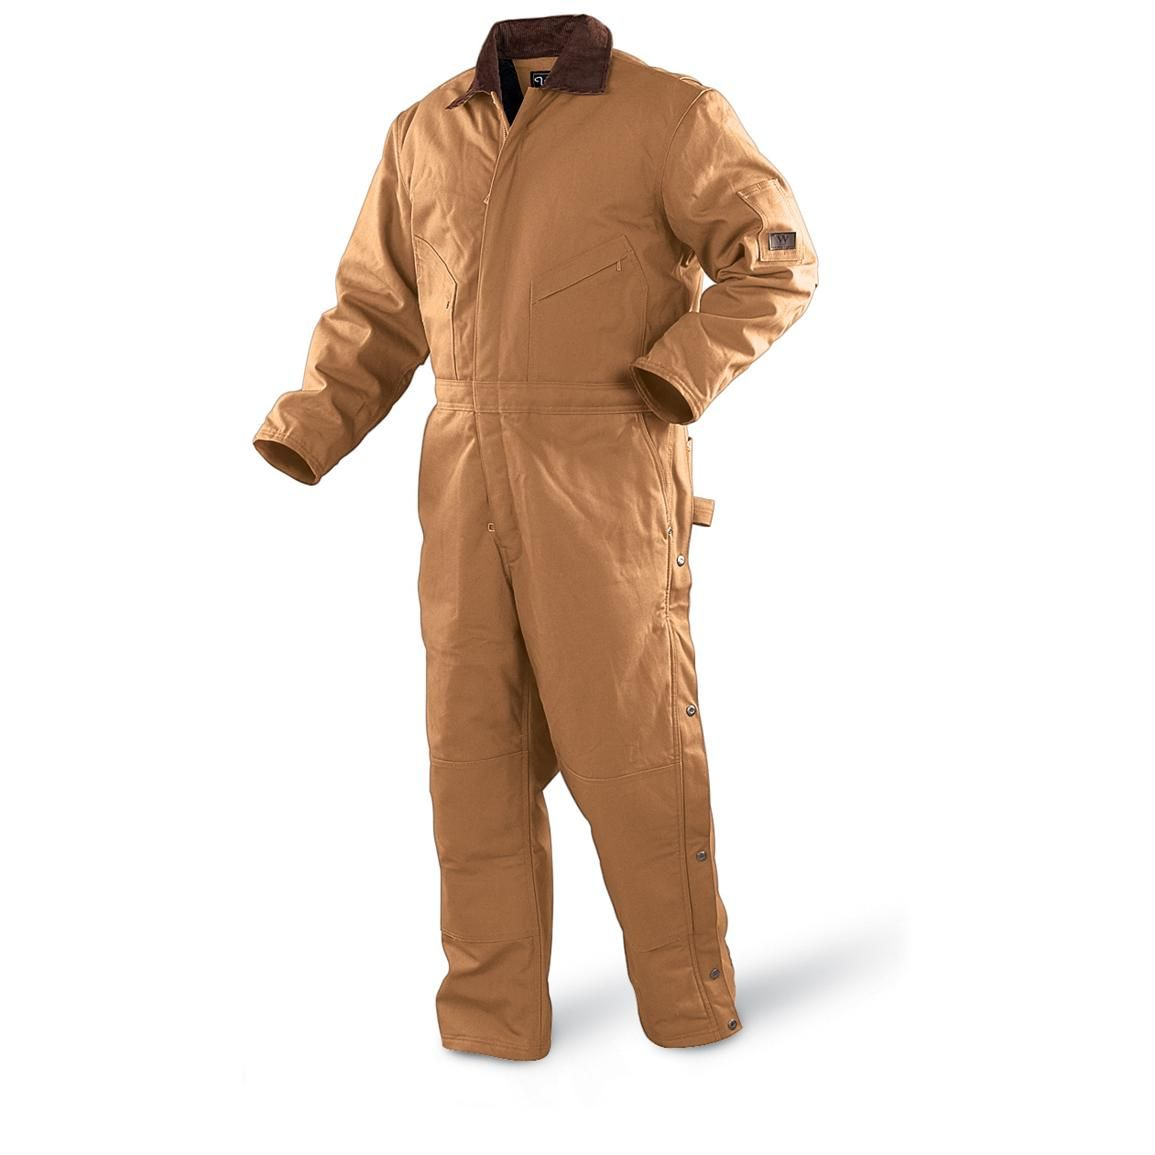 walls blizzard pruf insulated coveralls walls blizzard on walls insulated coveralls blizzard pruf id=83073